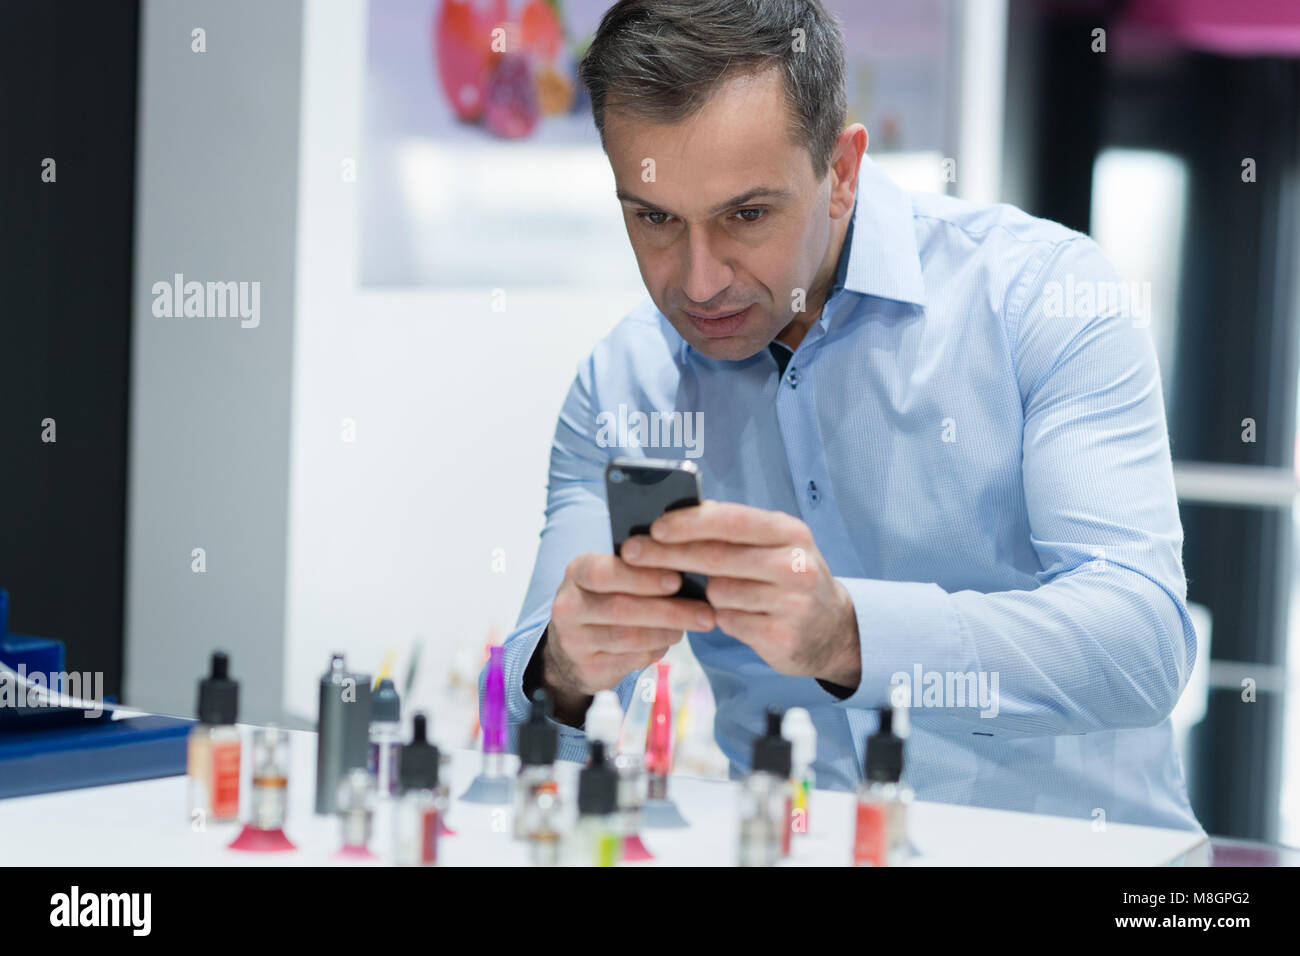 man in vaporizer shop being passed a case - Stock Image